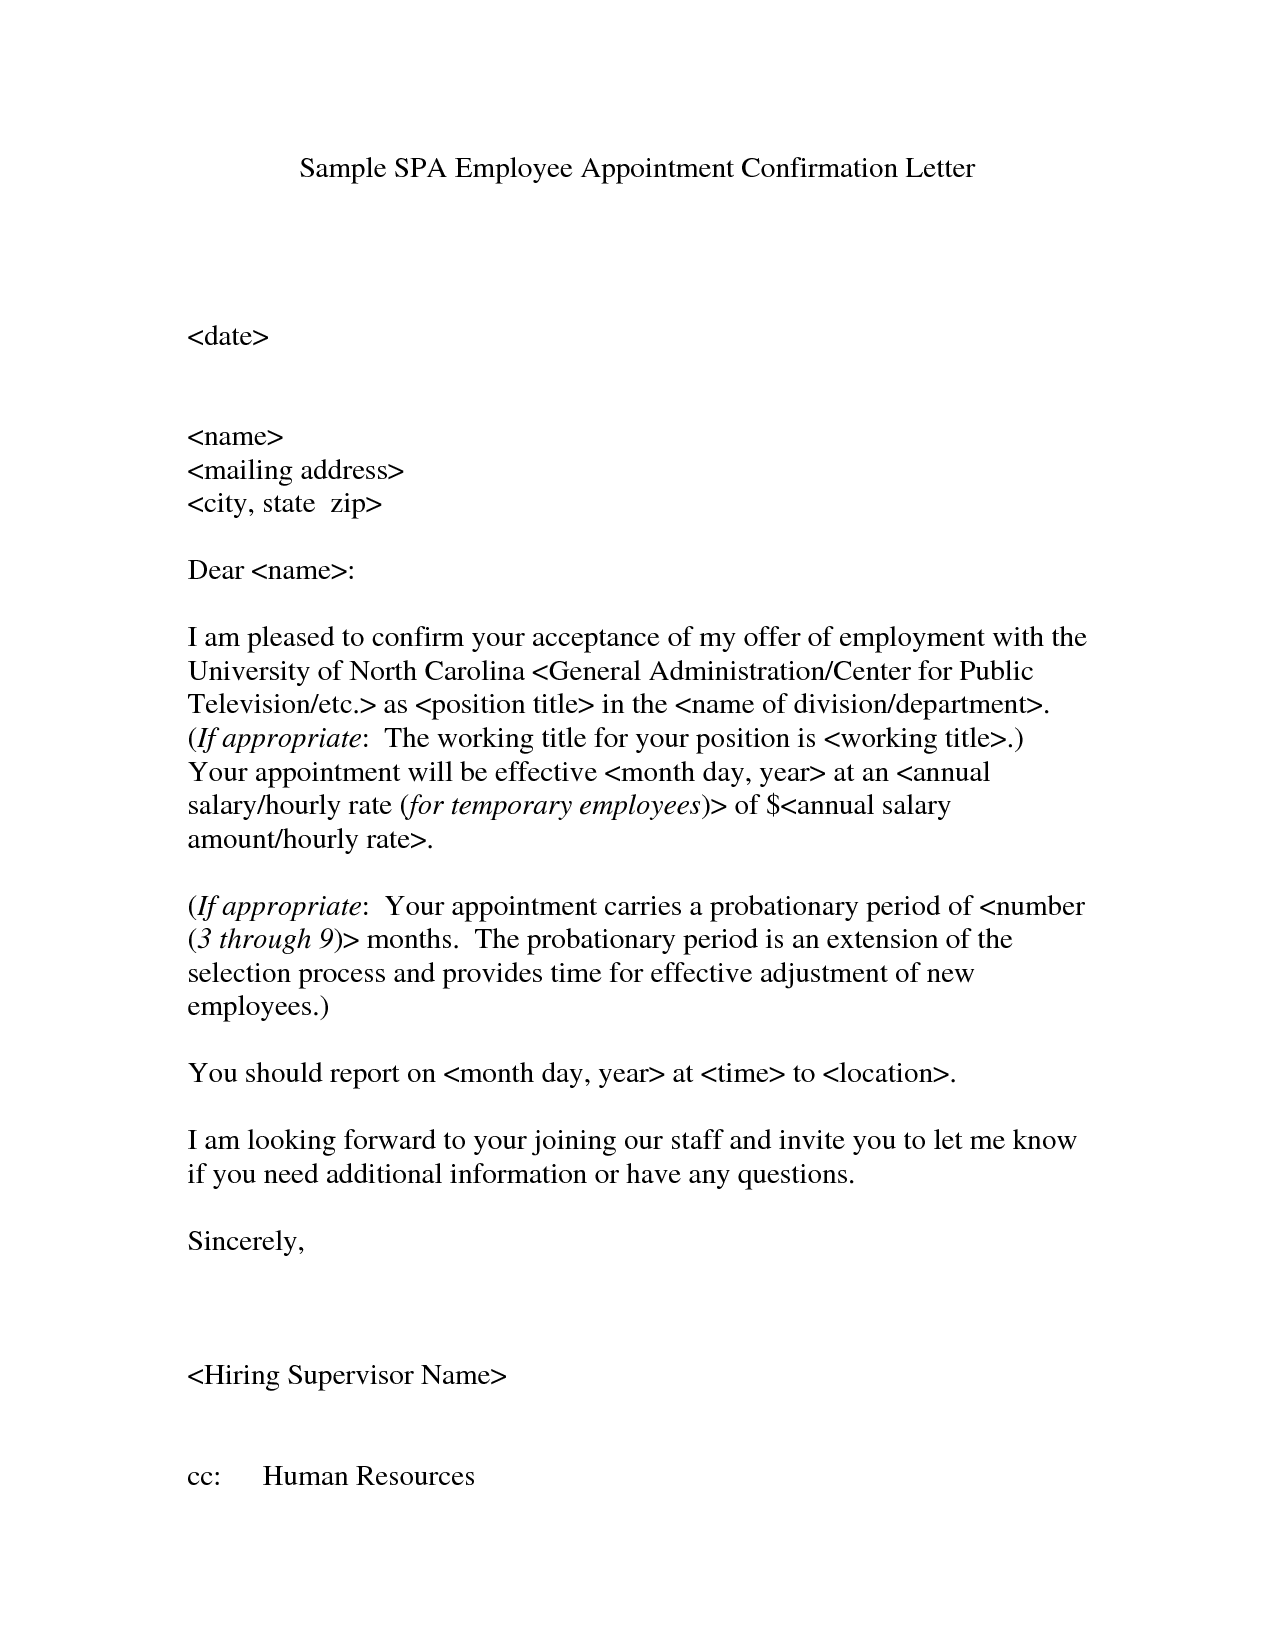 Letter of appointment format for employee juvecenitdelacabrera letter of appointment format for employee altavistaventures Gallery